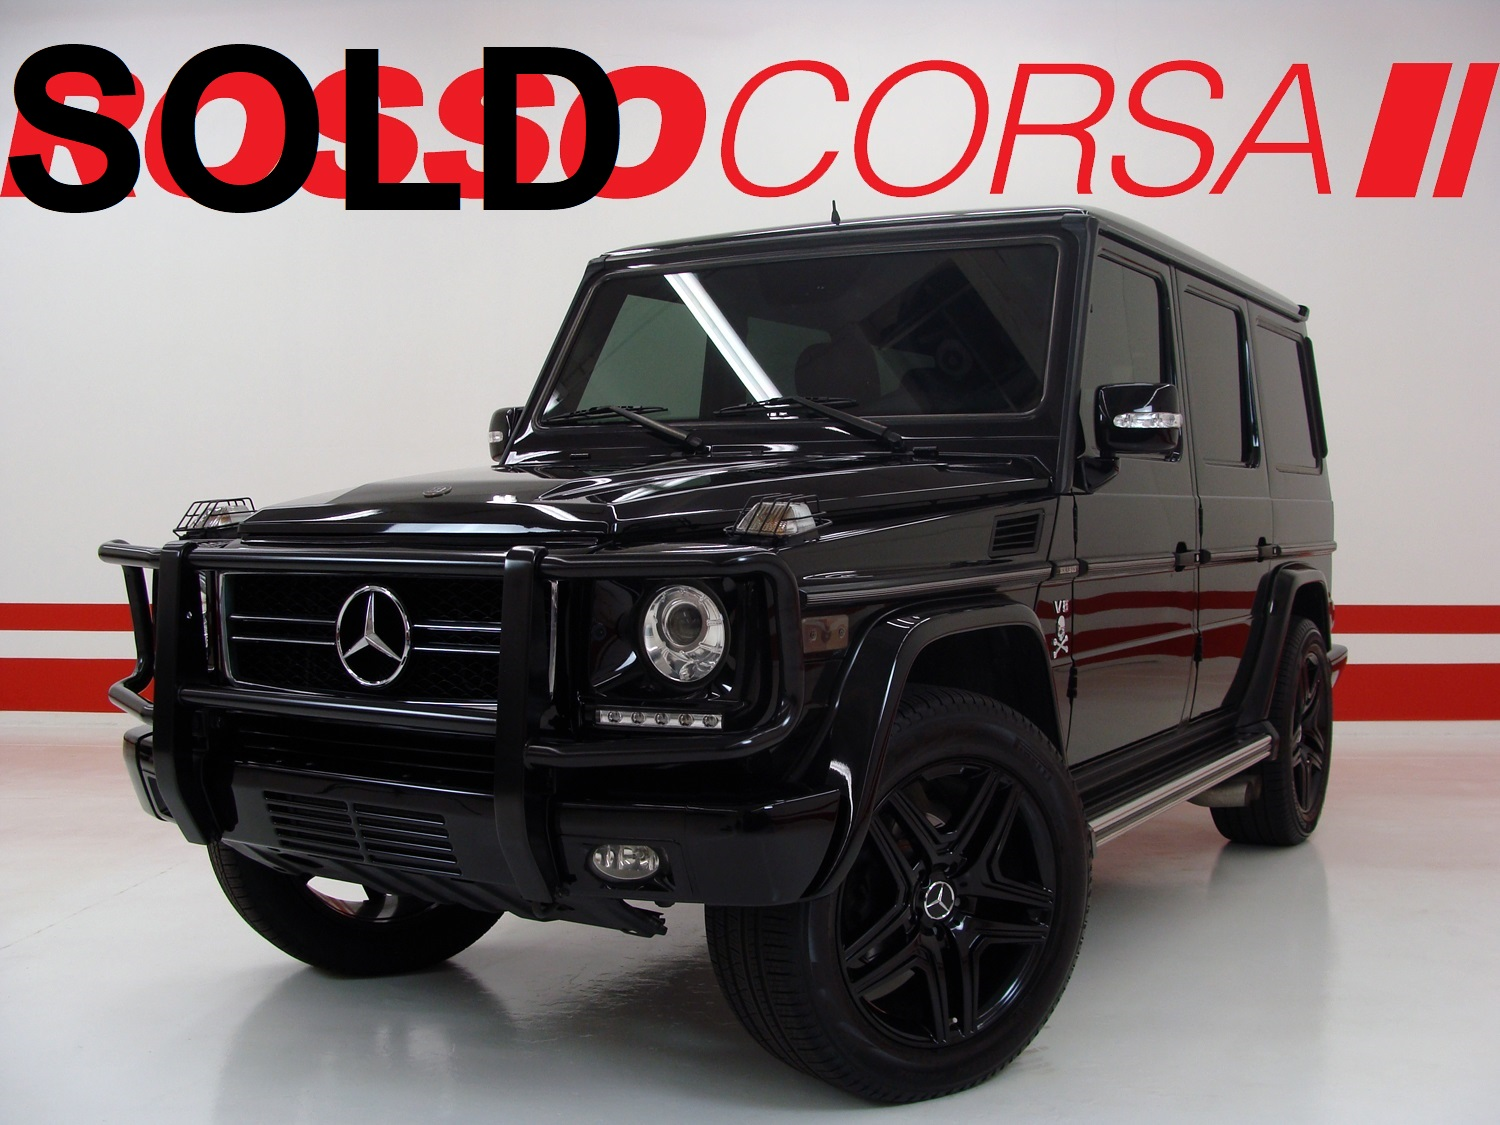 2009 Mercedes-Benz G550 - CUSTOM (Brabus upgrades)